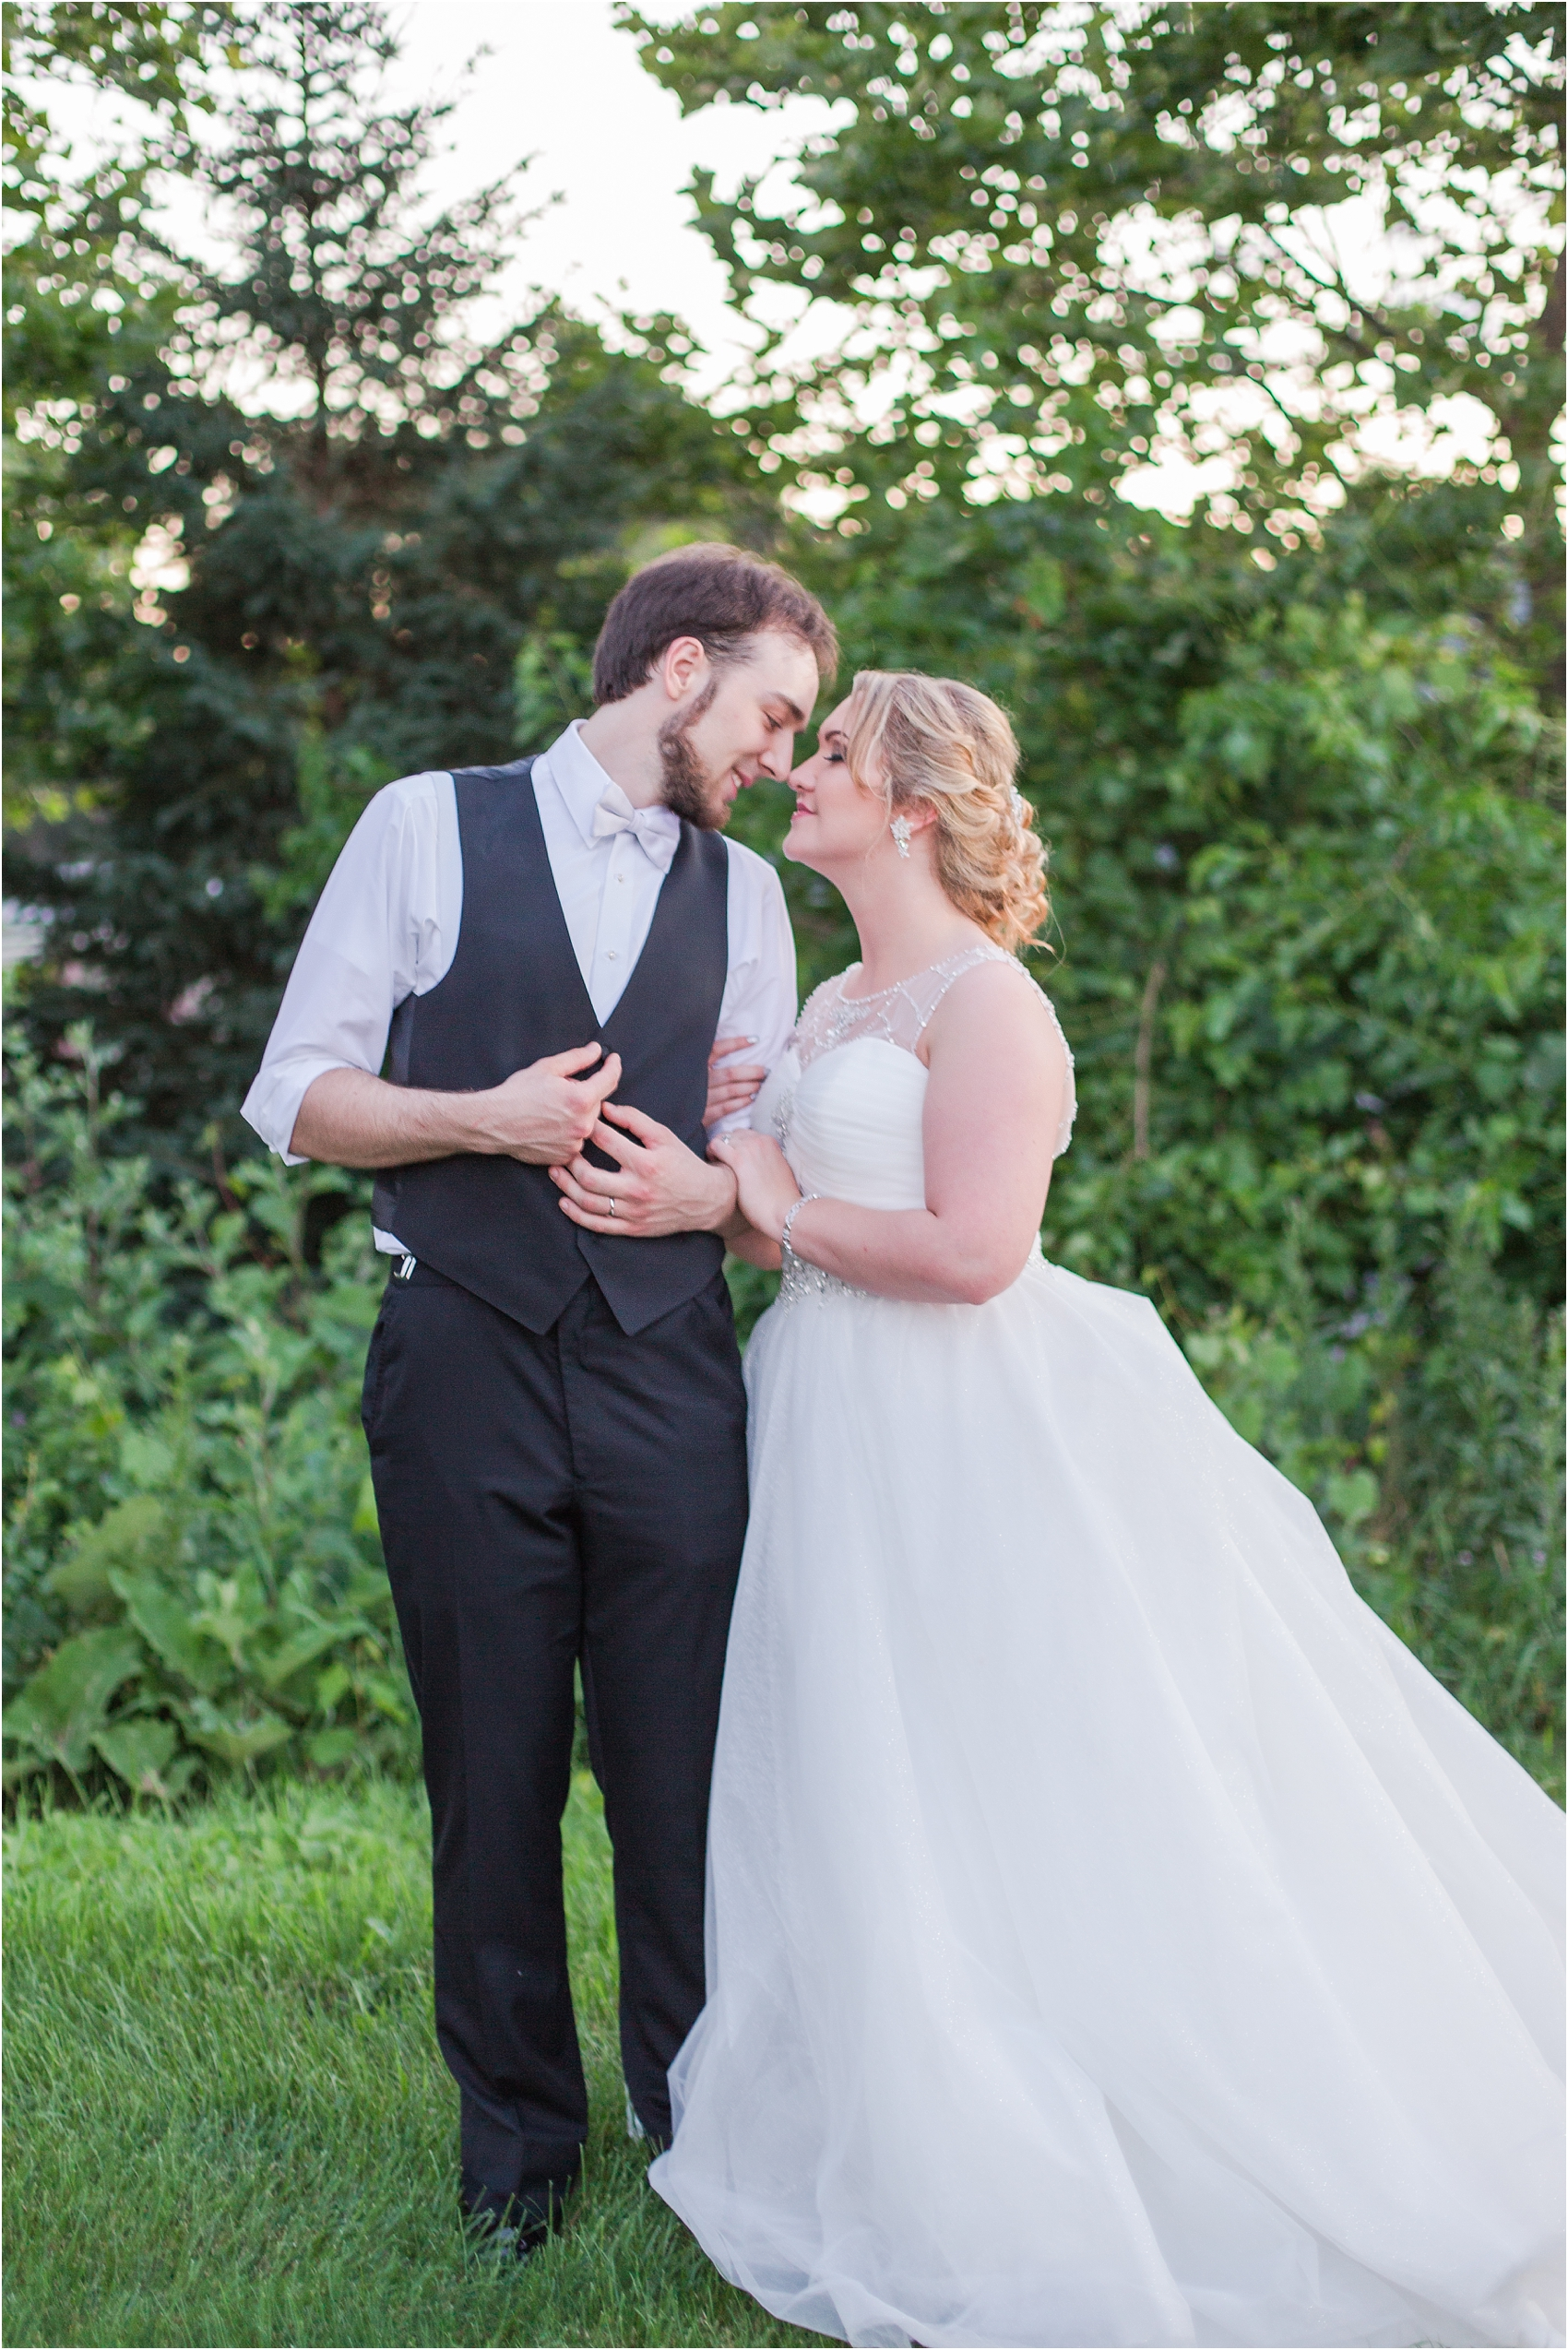 lord-of-the-rings-inspired-wedding-photos-at-crystal-gardens-in-howell-mi-by-courtney-carolyn-photography_0122.jpg